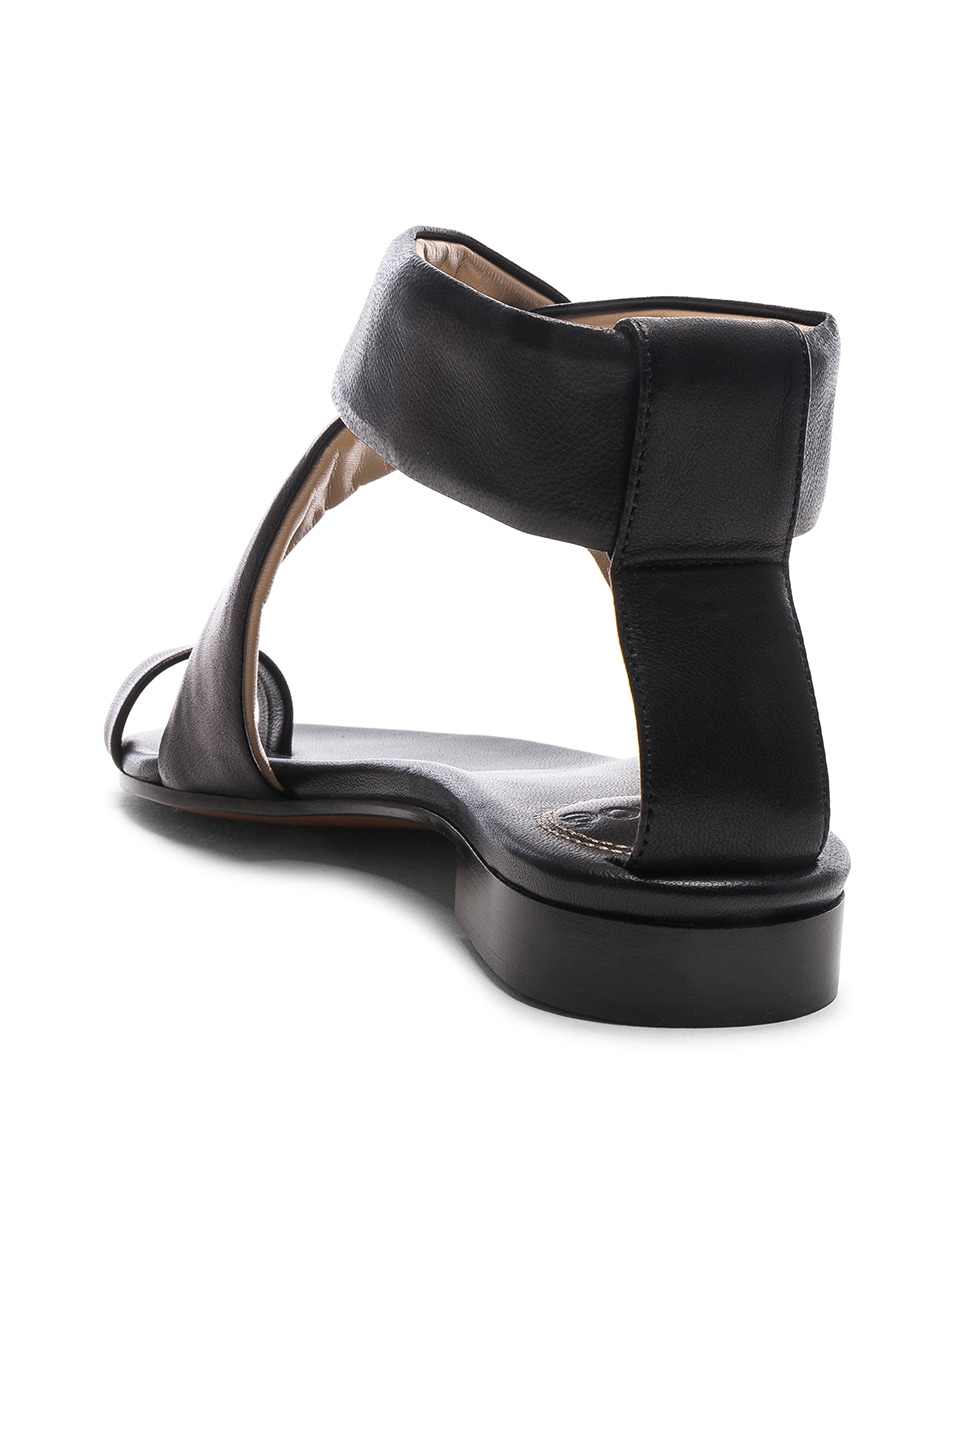 Image 3 of Chloe Two Strap Sandals in Black